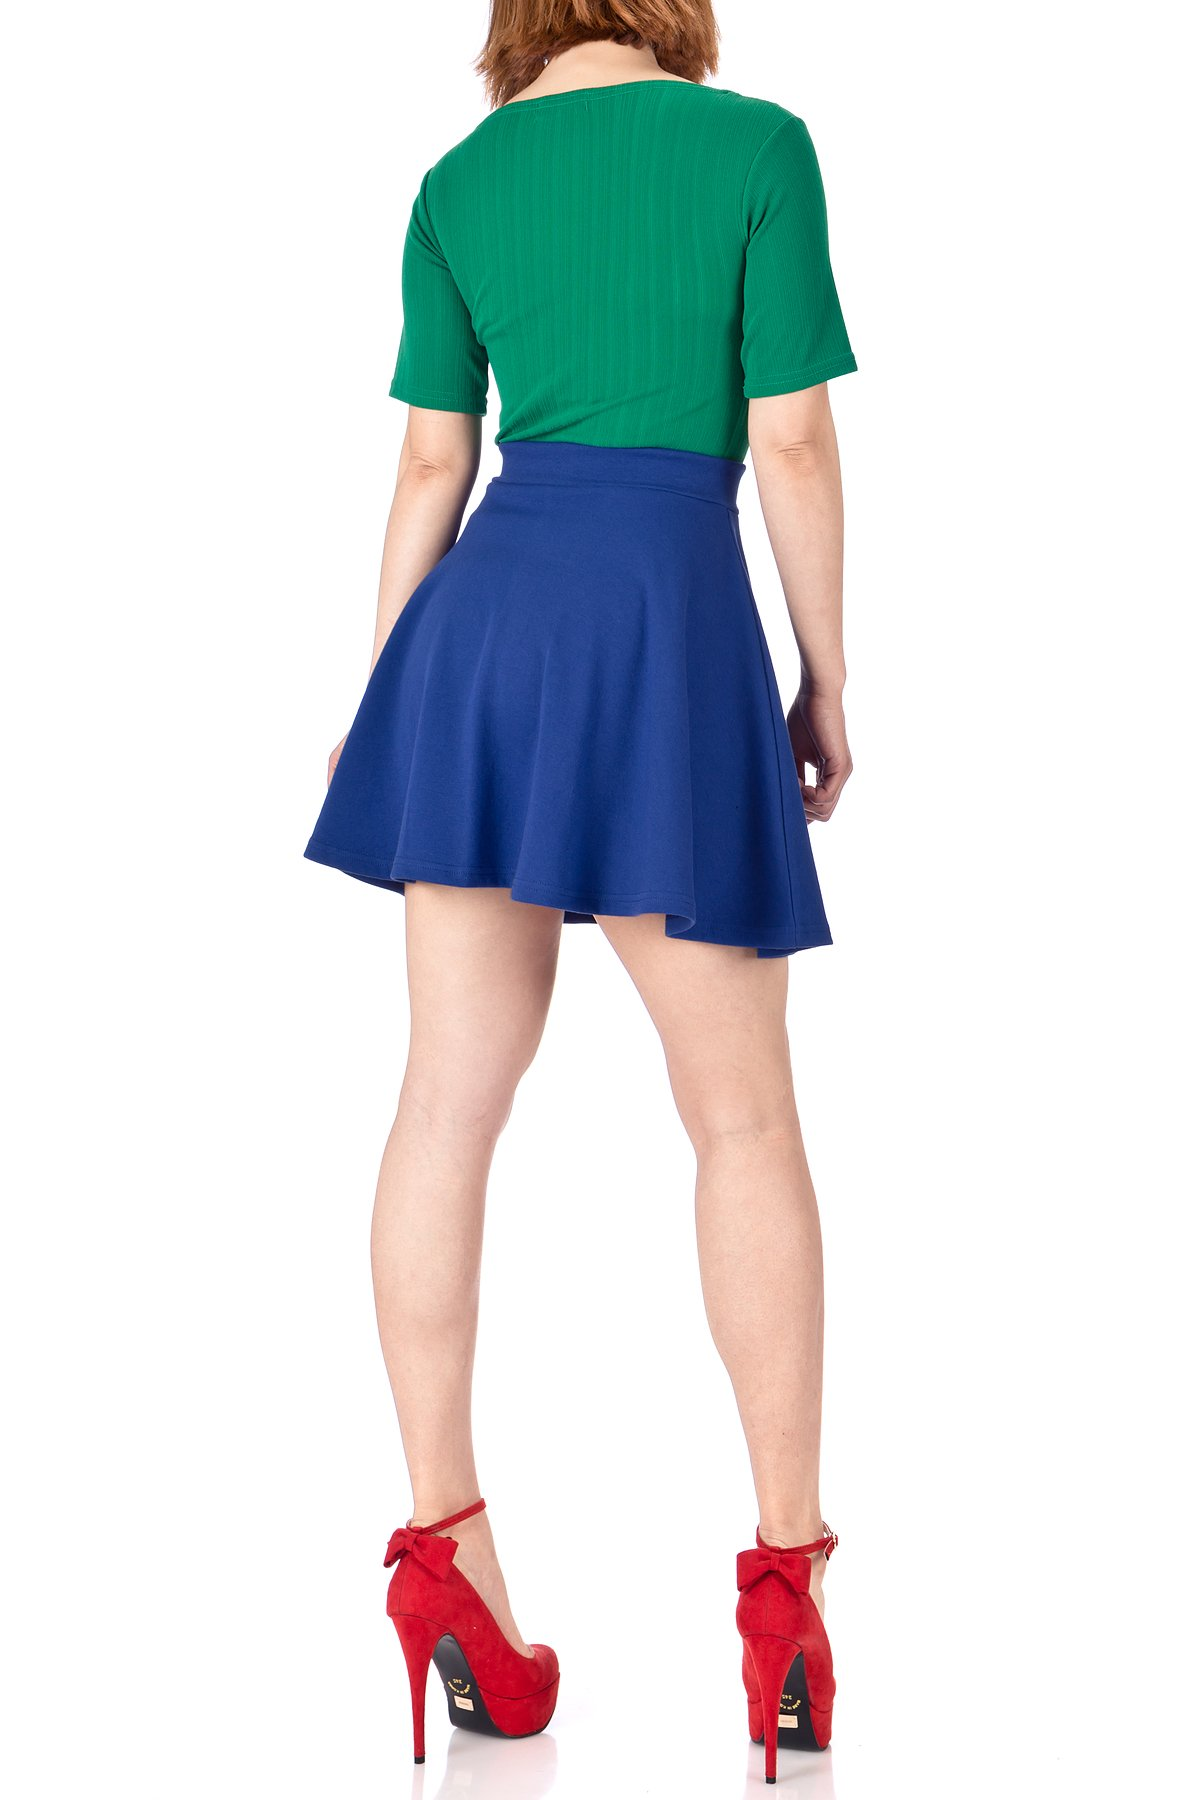 Basic Solid Stretchy Cotton High Waist line Flared Skater Mini Skirt Cobalt Blue 05